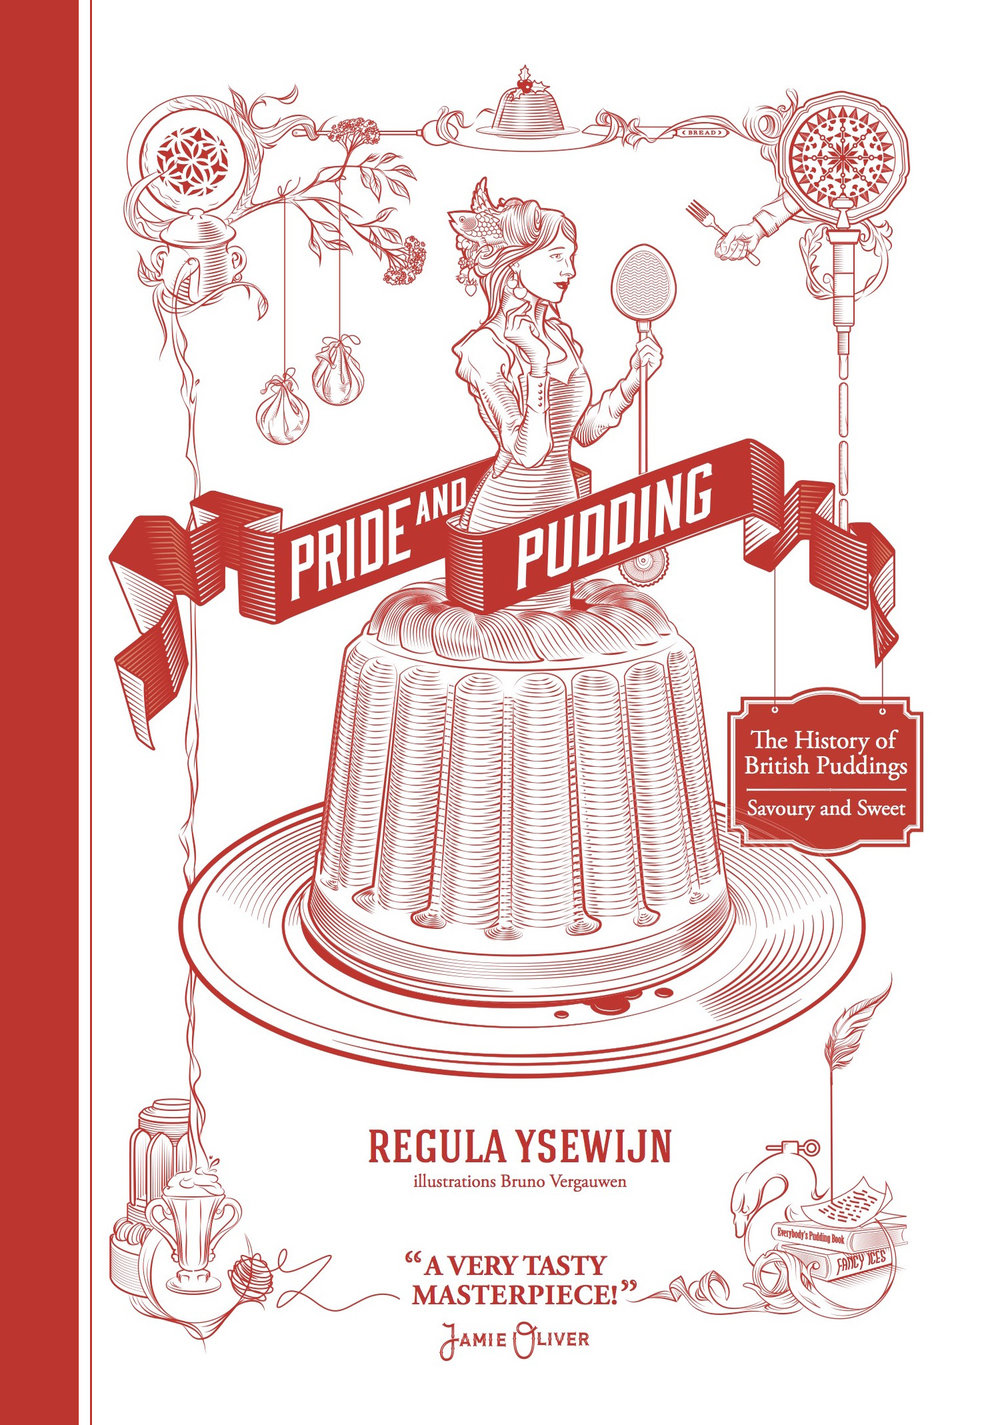 Pride and Pudding by Regula Ysewijn